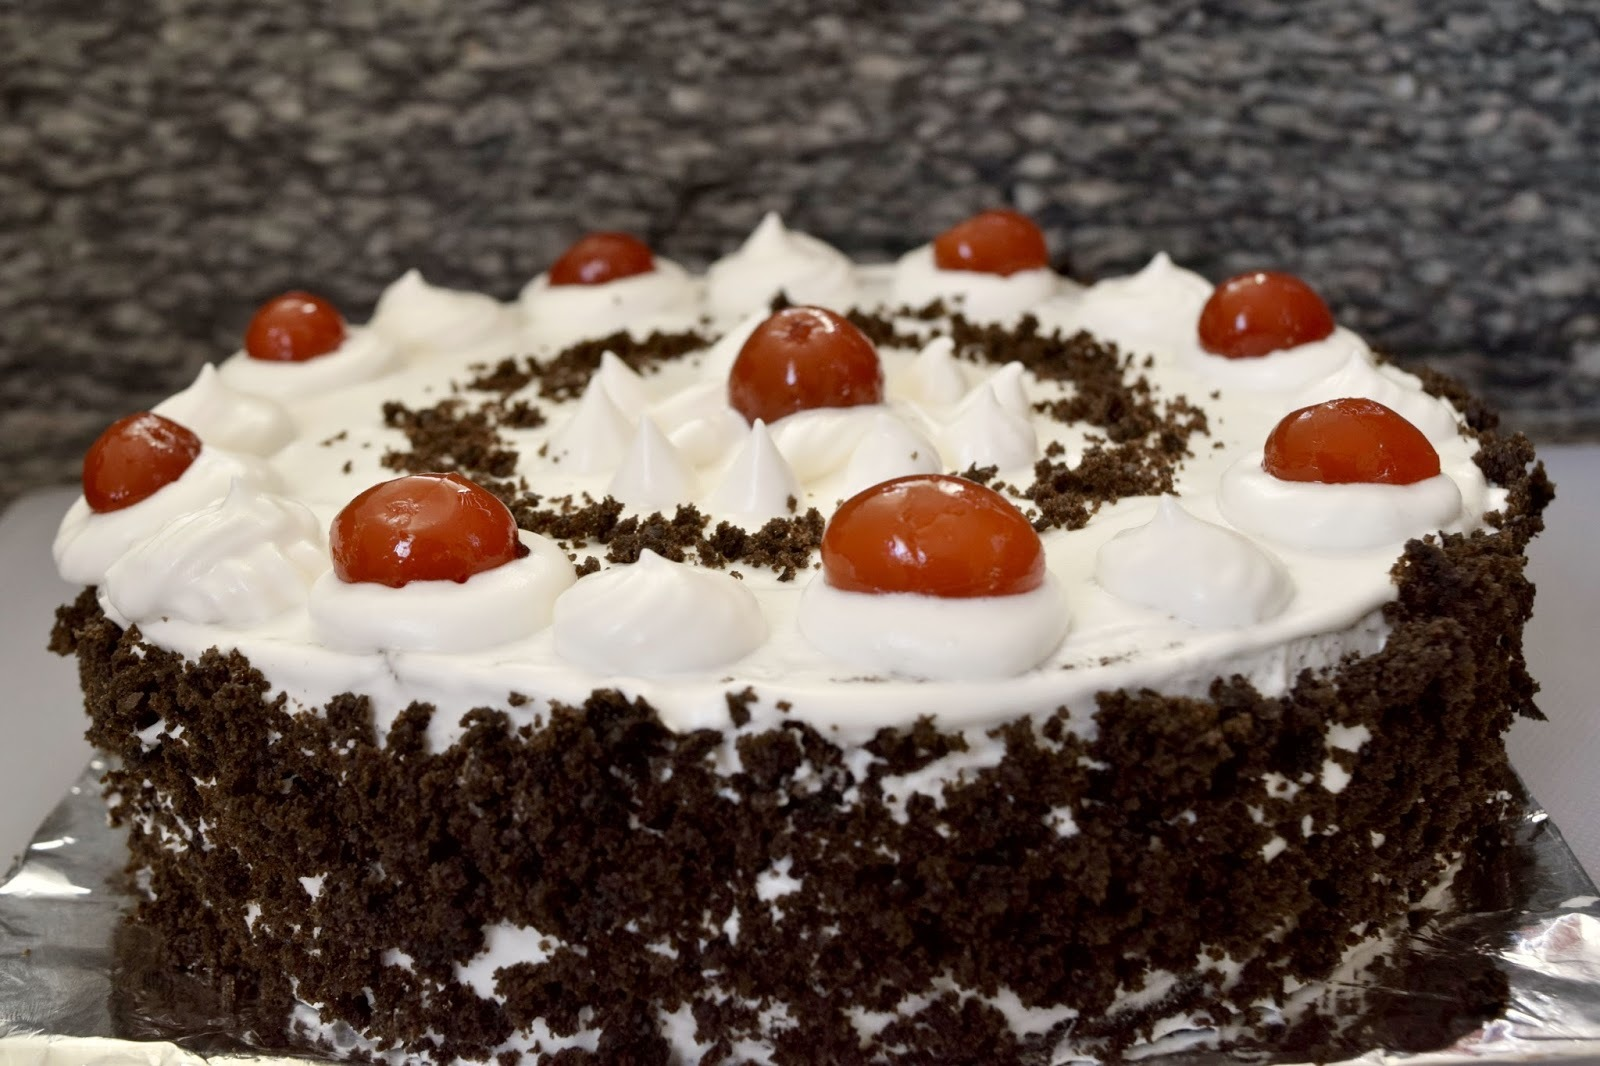 Simple Black forest cake/ Black forest pastry ~~Eggless Baking